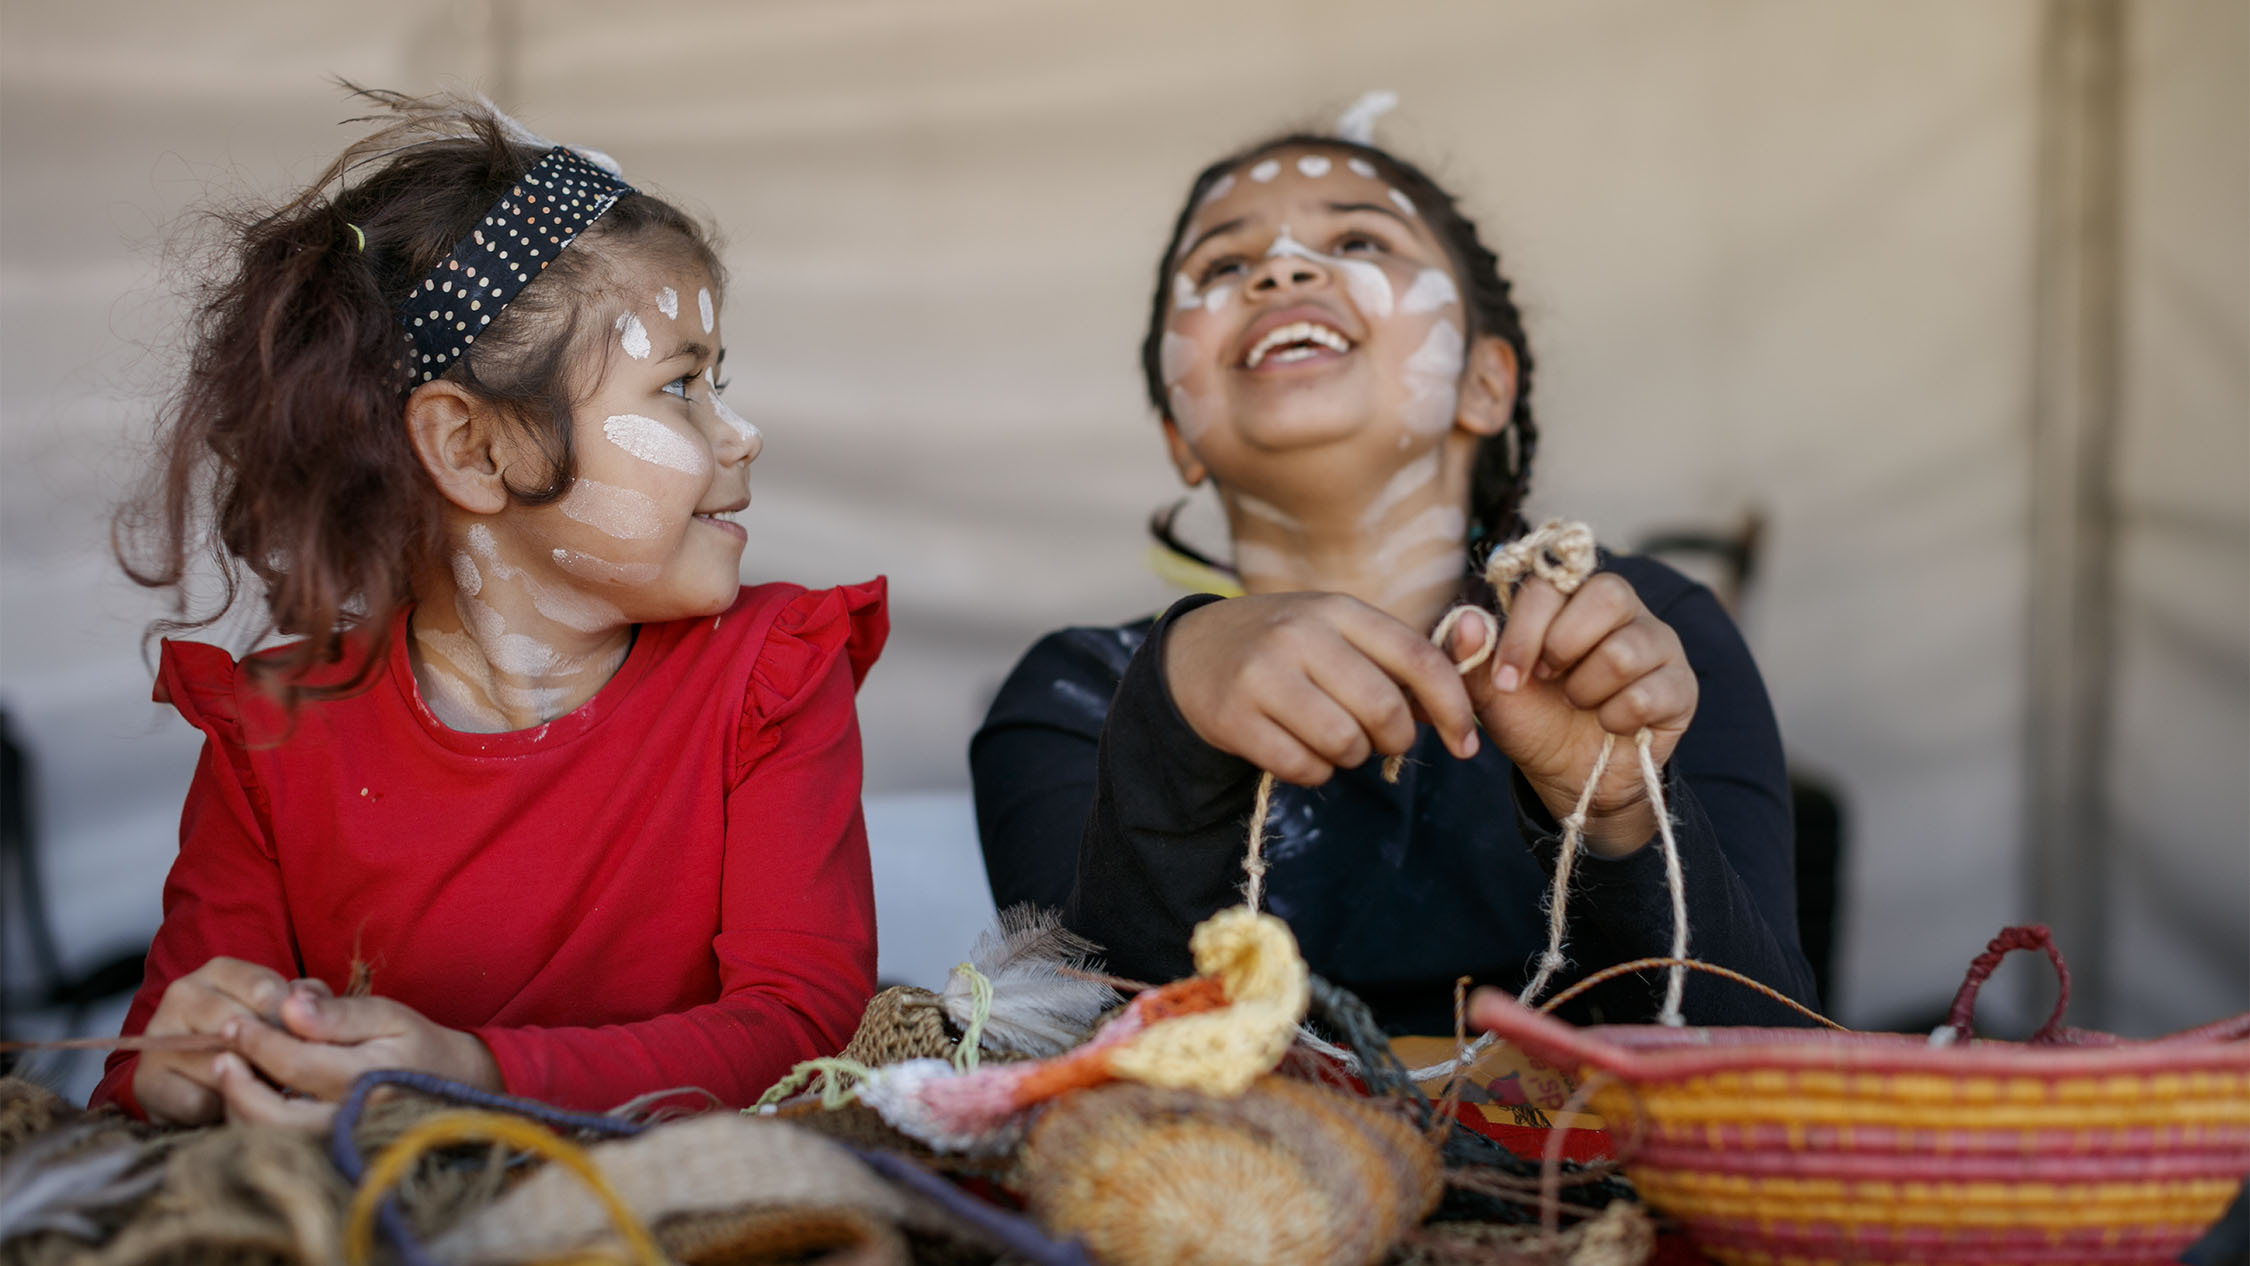 Two kids in Indigenous face paint doing craft.